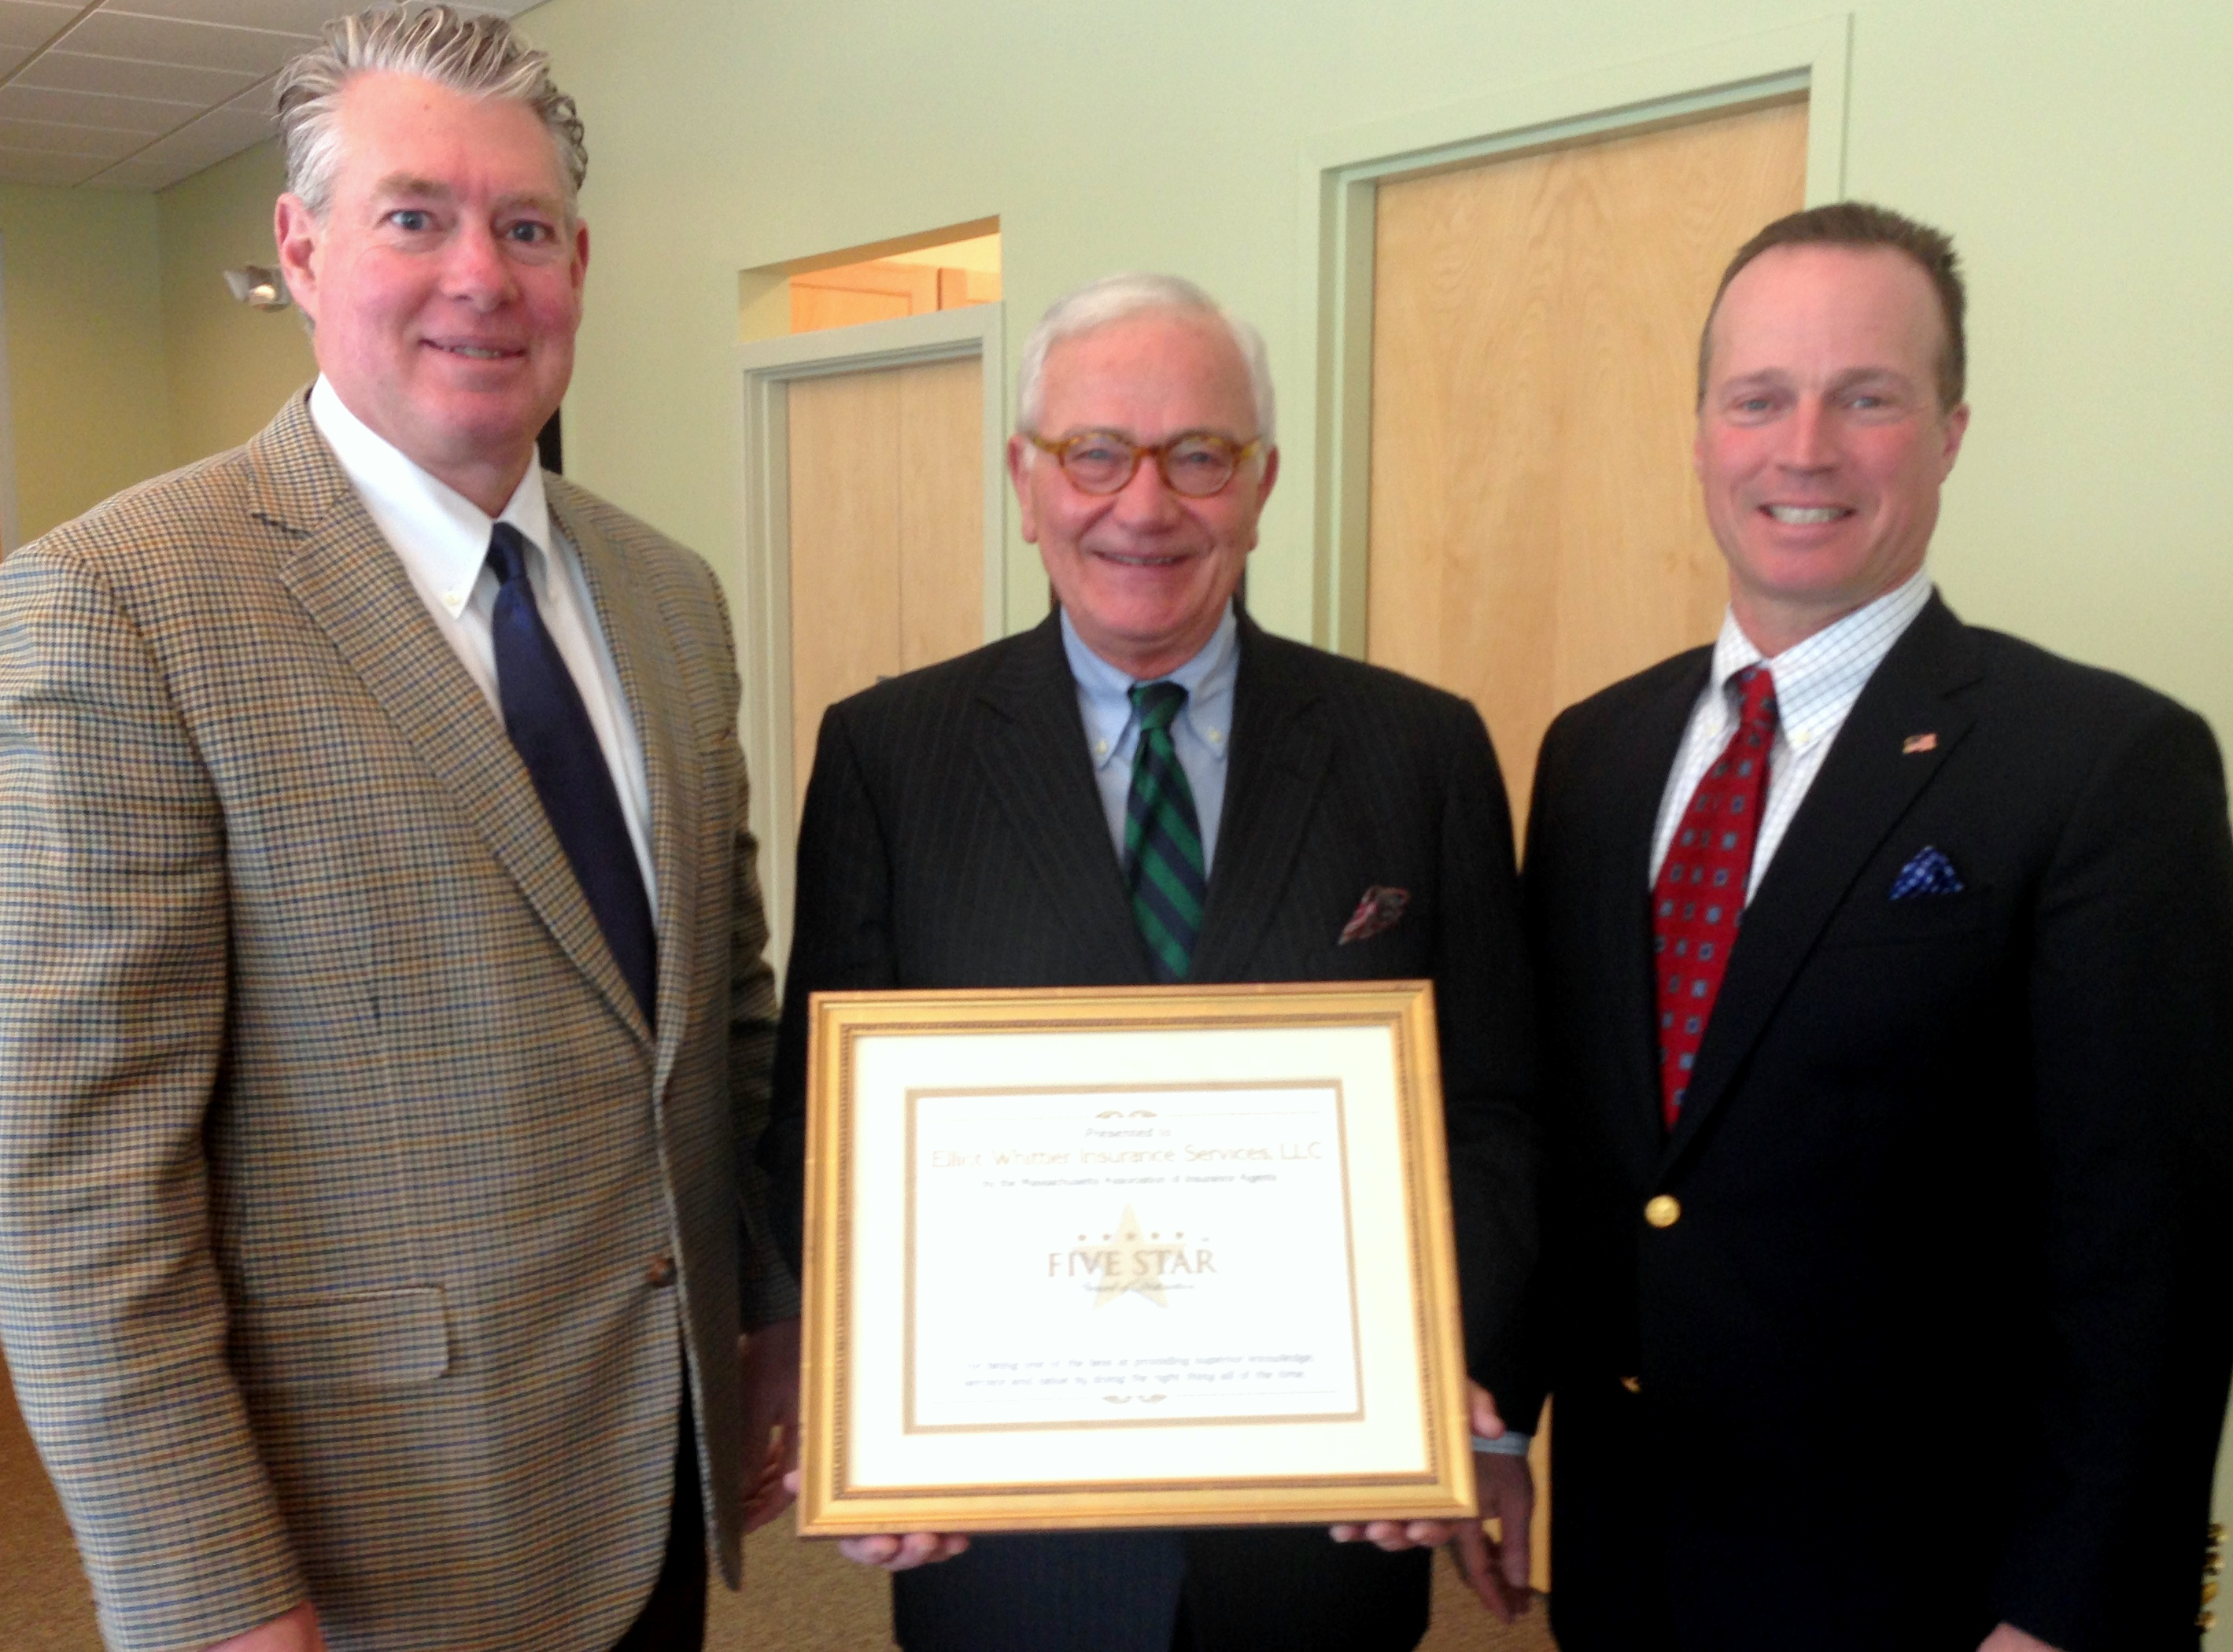 Elliot Whittier Insurance Receives 5 Star Designation from Frank Mancini MAIA.  Shown here are Wayne Guyer, Frank Mancini, and Steve Roy